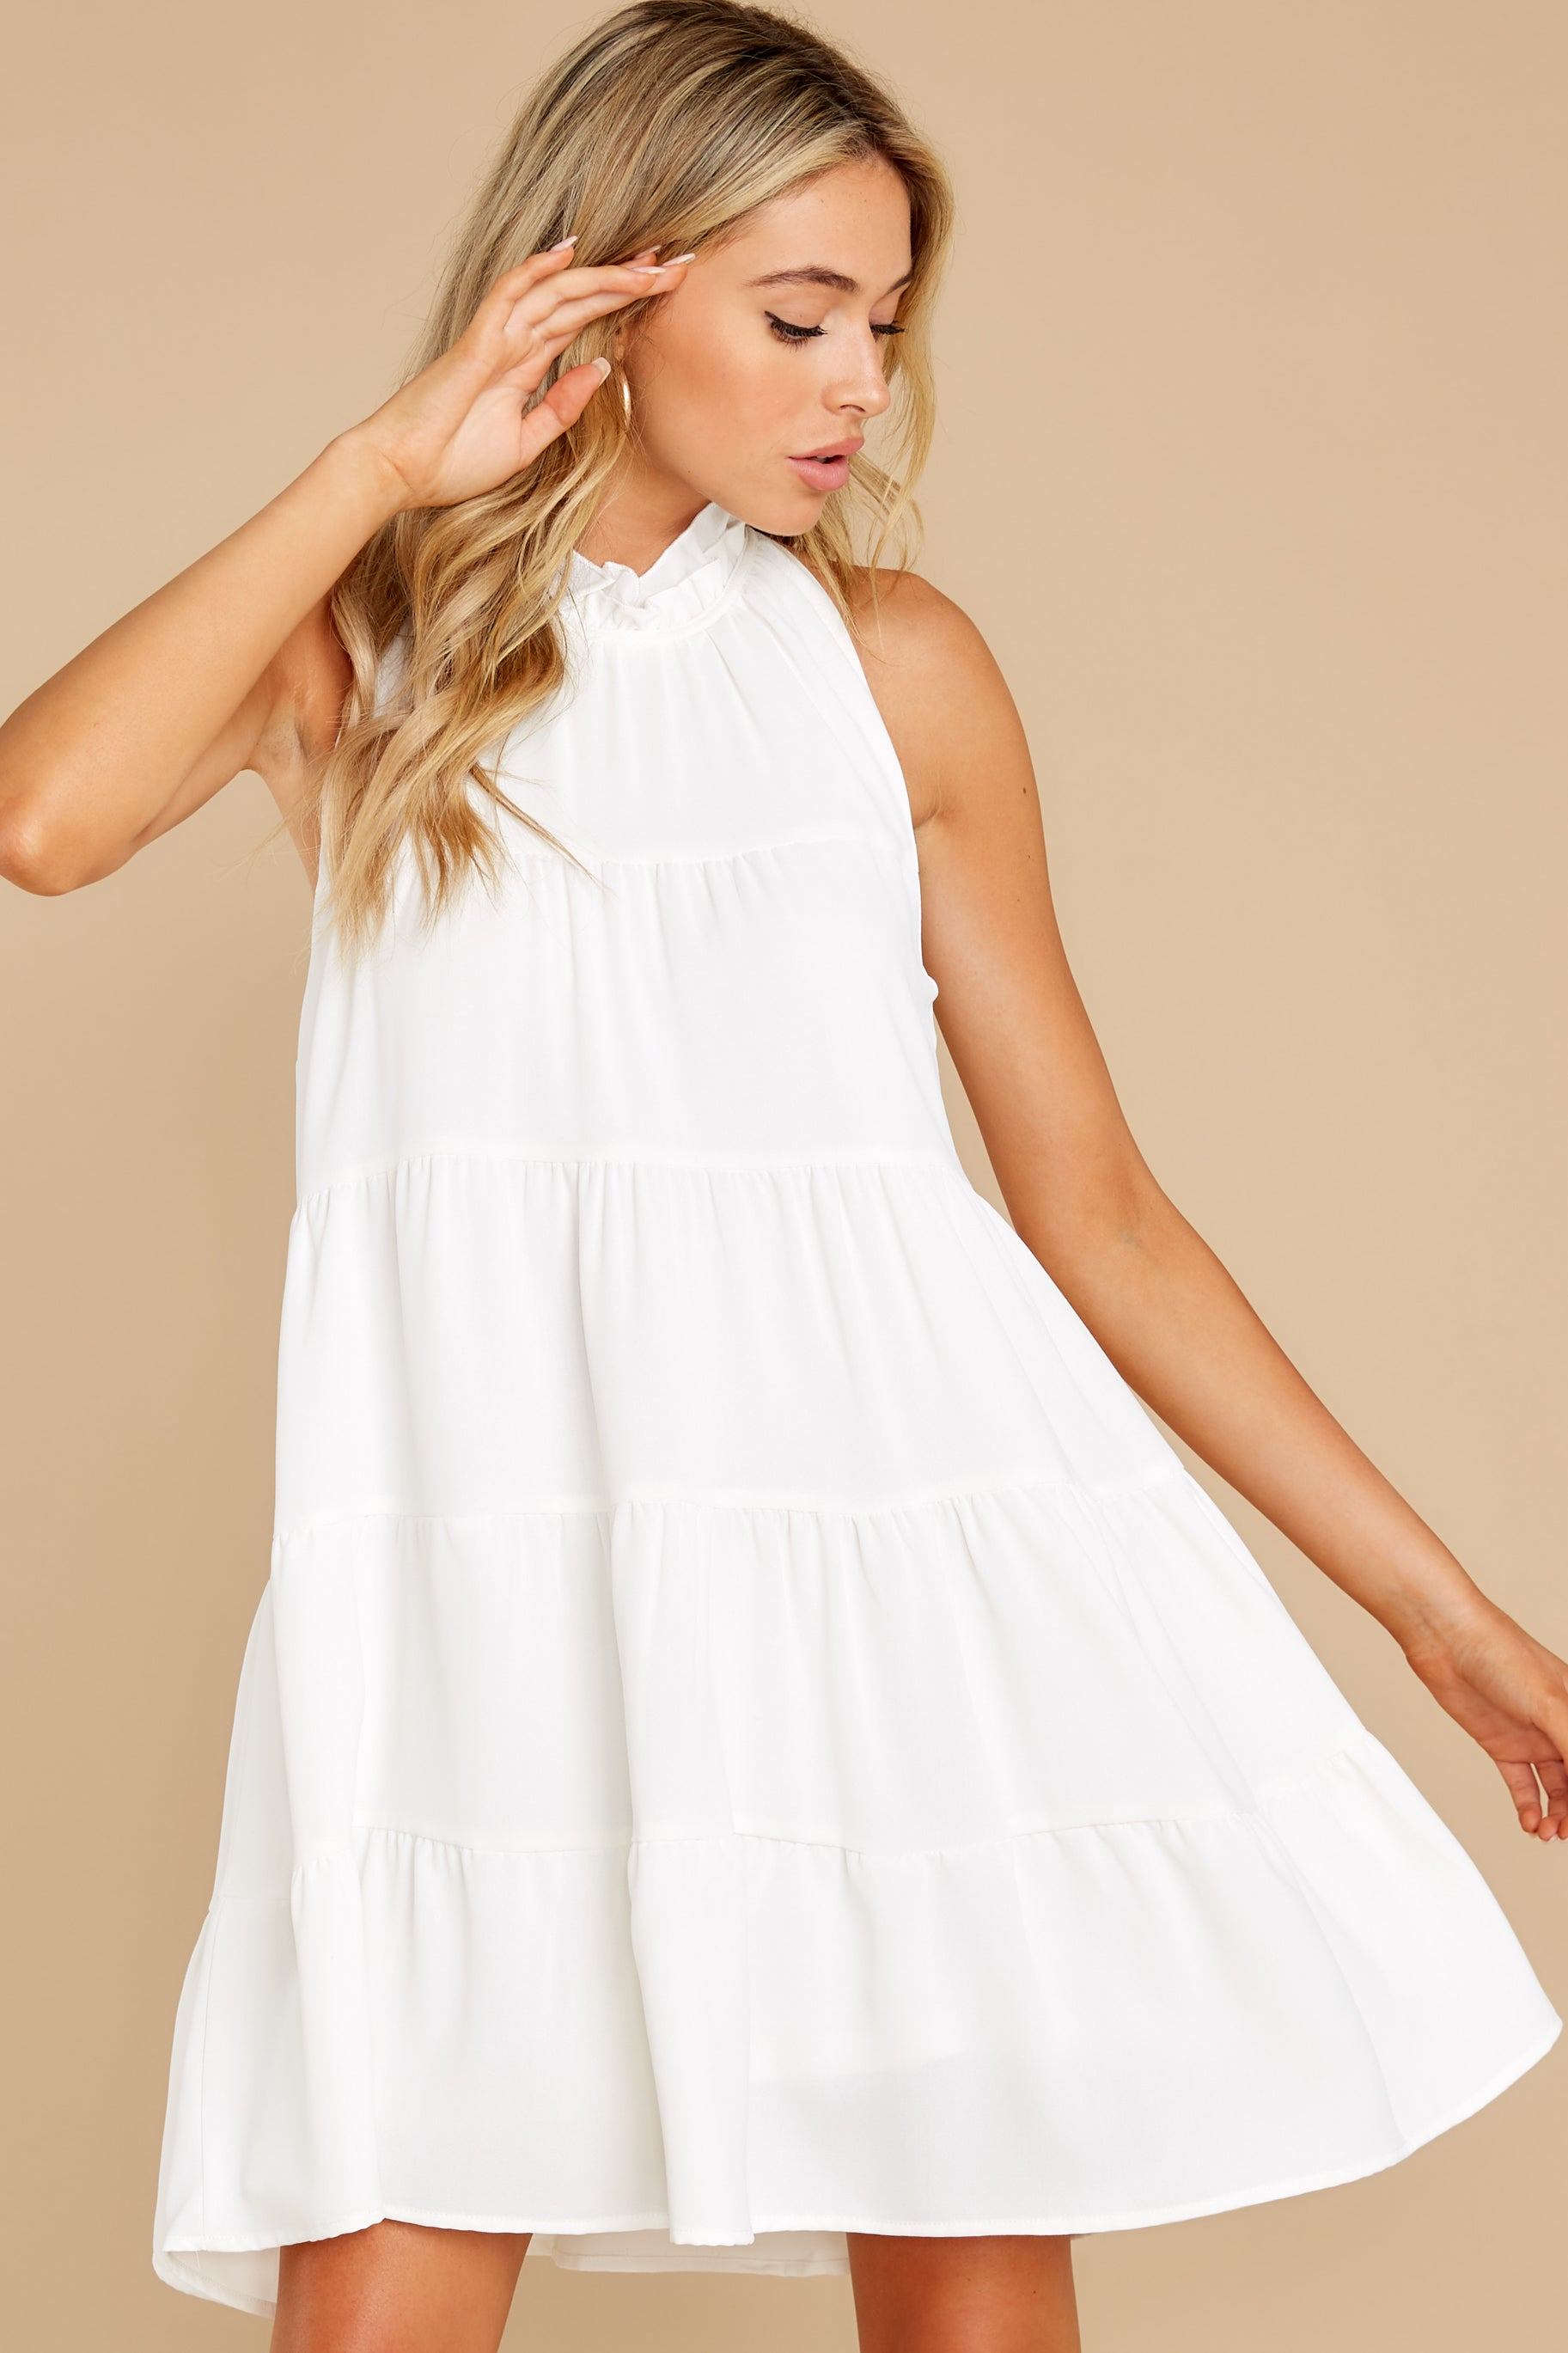 4 Cut To The Chase Off White Dress at reddress.com